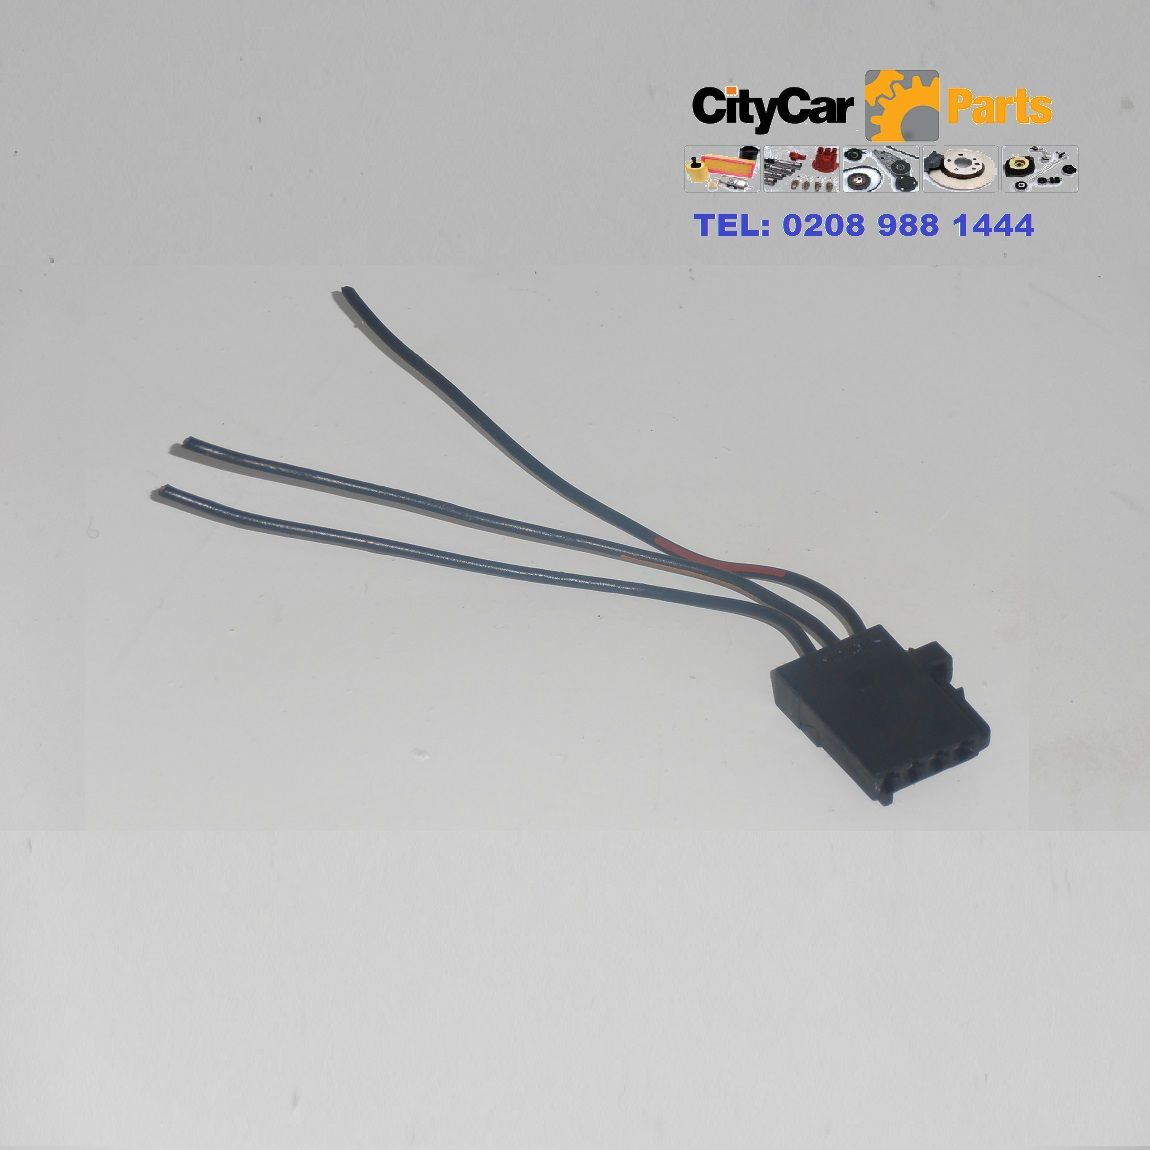 2003 Saturn Vue Car Stereo Wire Diagram further P 0996b43f80cb0dc2 additionally Watch moreover Abs Code 1 Fix Pics 2830570 additionally Wiring Diagram On Saab 9 3 Neutral. on acura cl sensor diagram